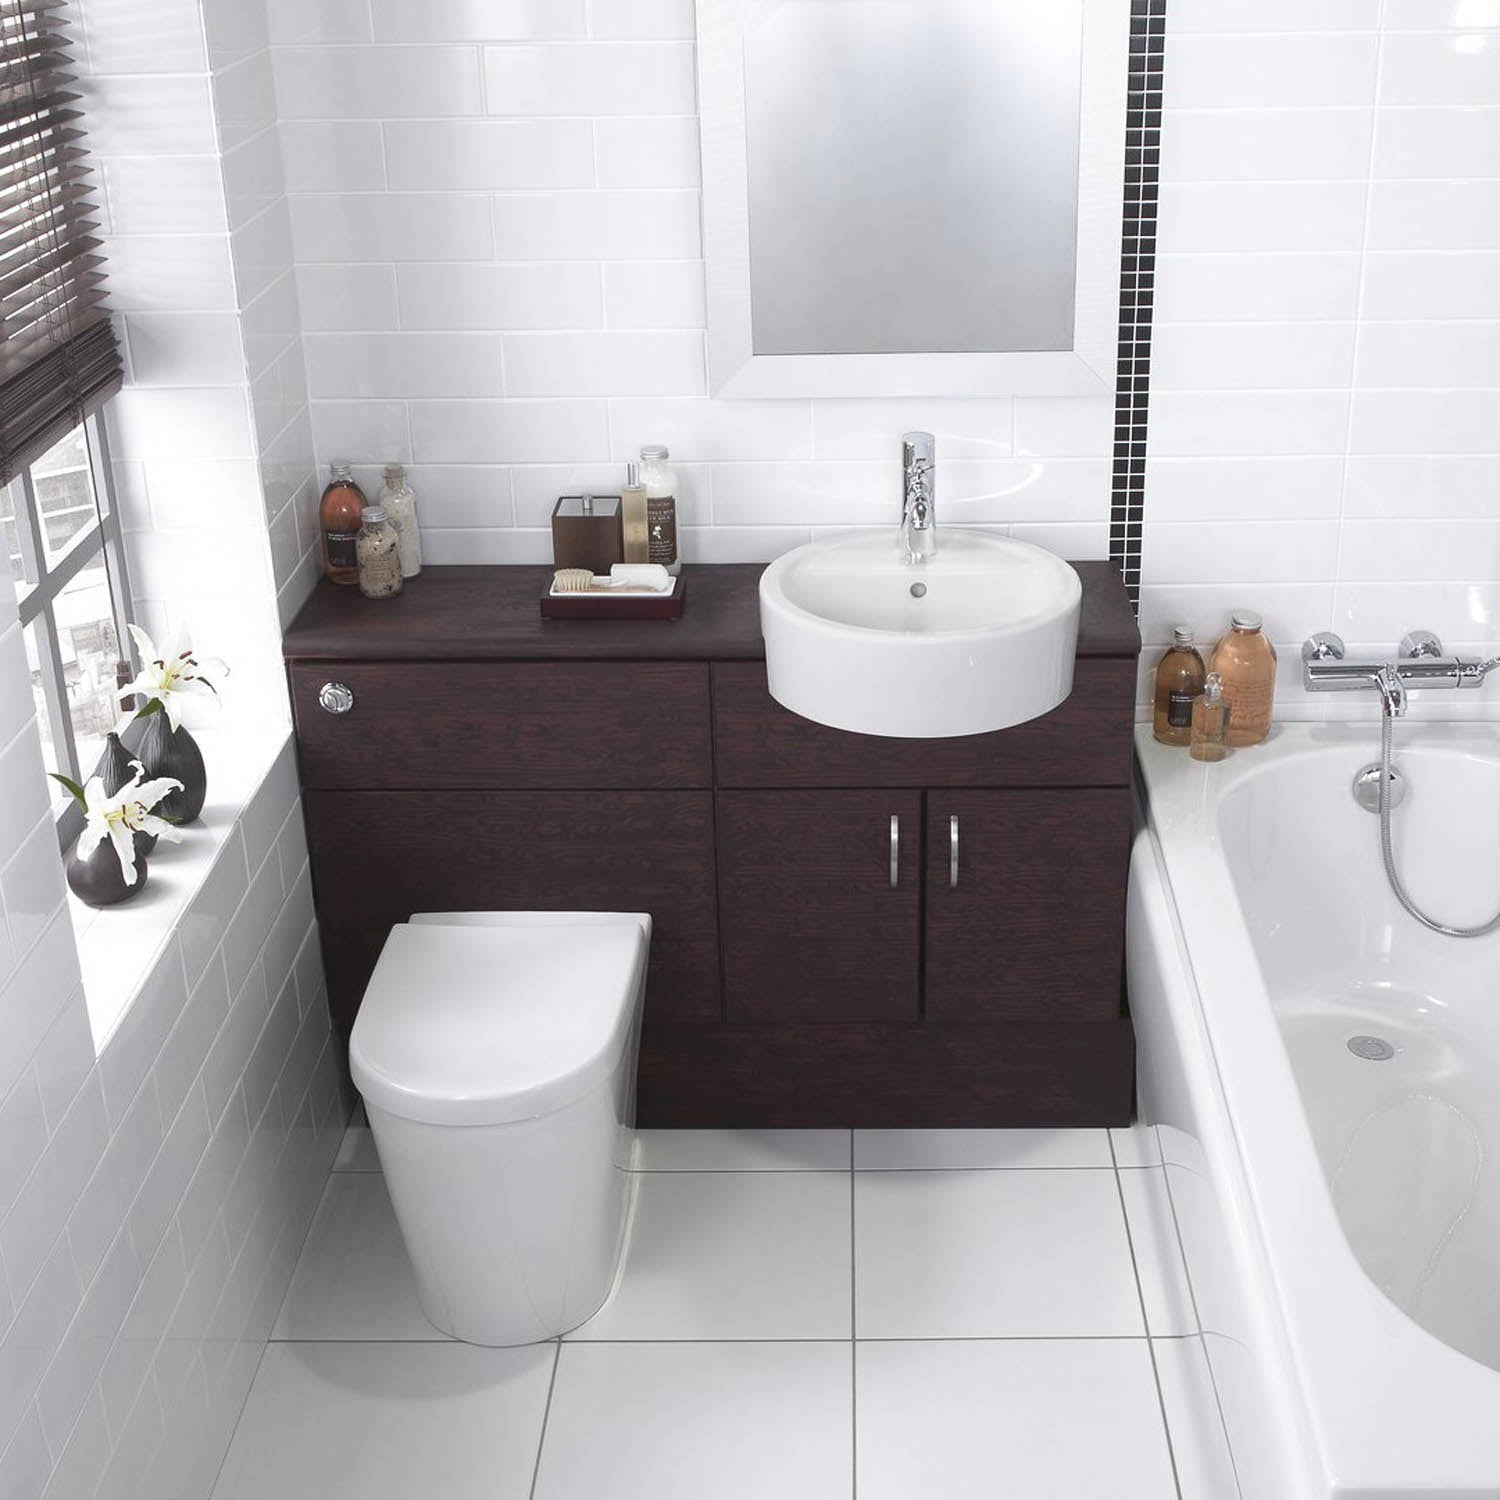 Matrix Long Projection Toilet Seat and Cover lifestyle image